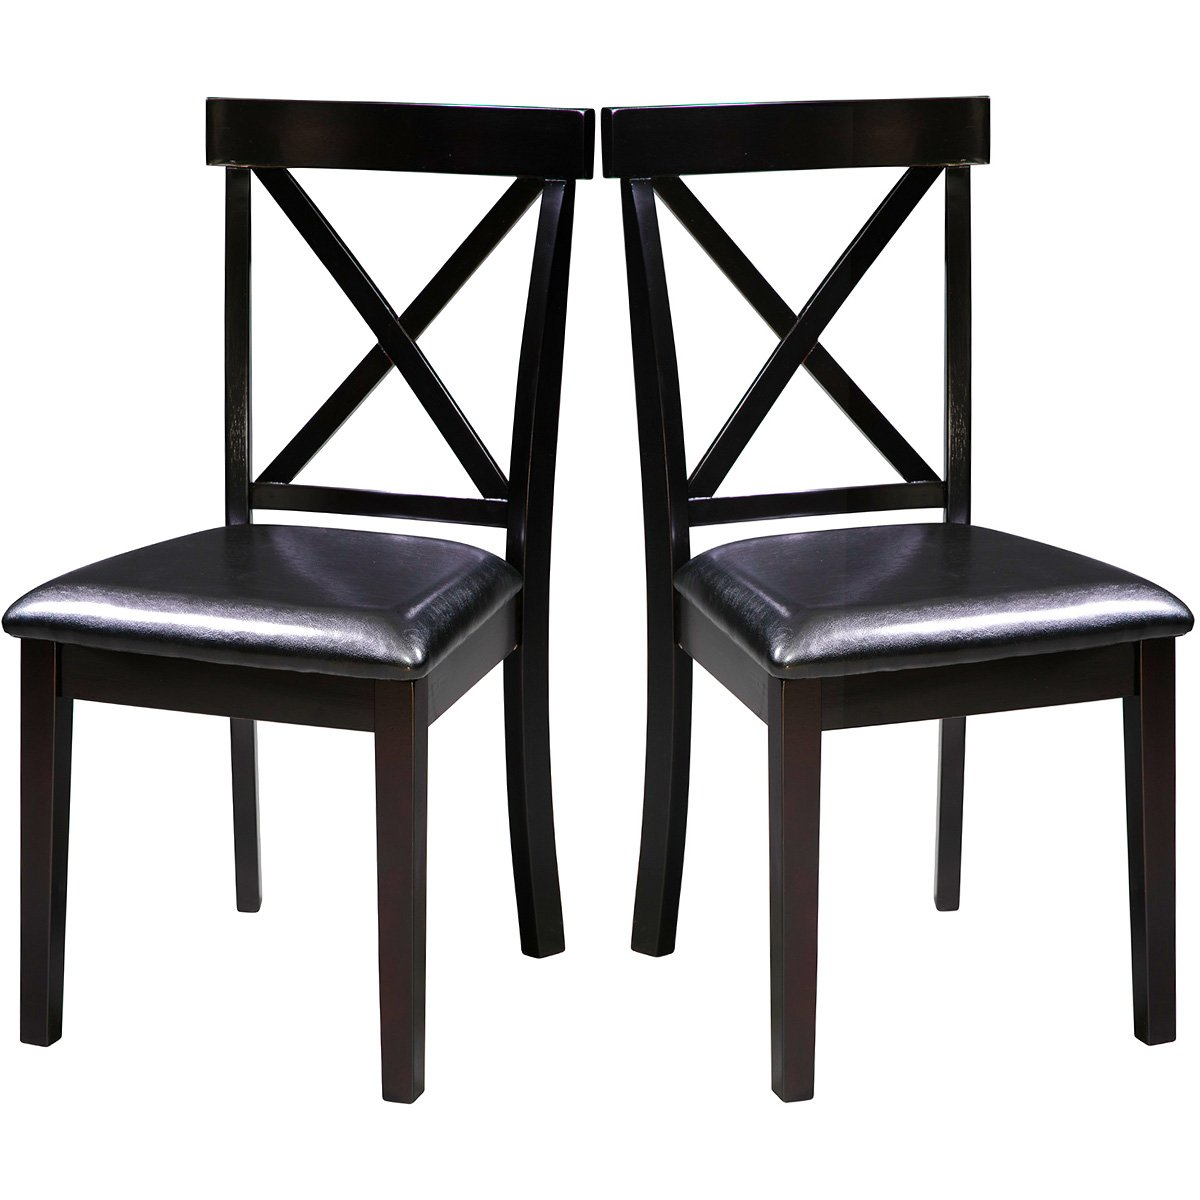 Harper Bright Design Wood Dining Chair Dining Room Side Chair, Set of 2 (X-Back)